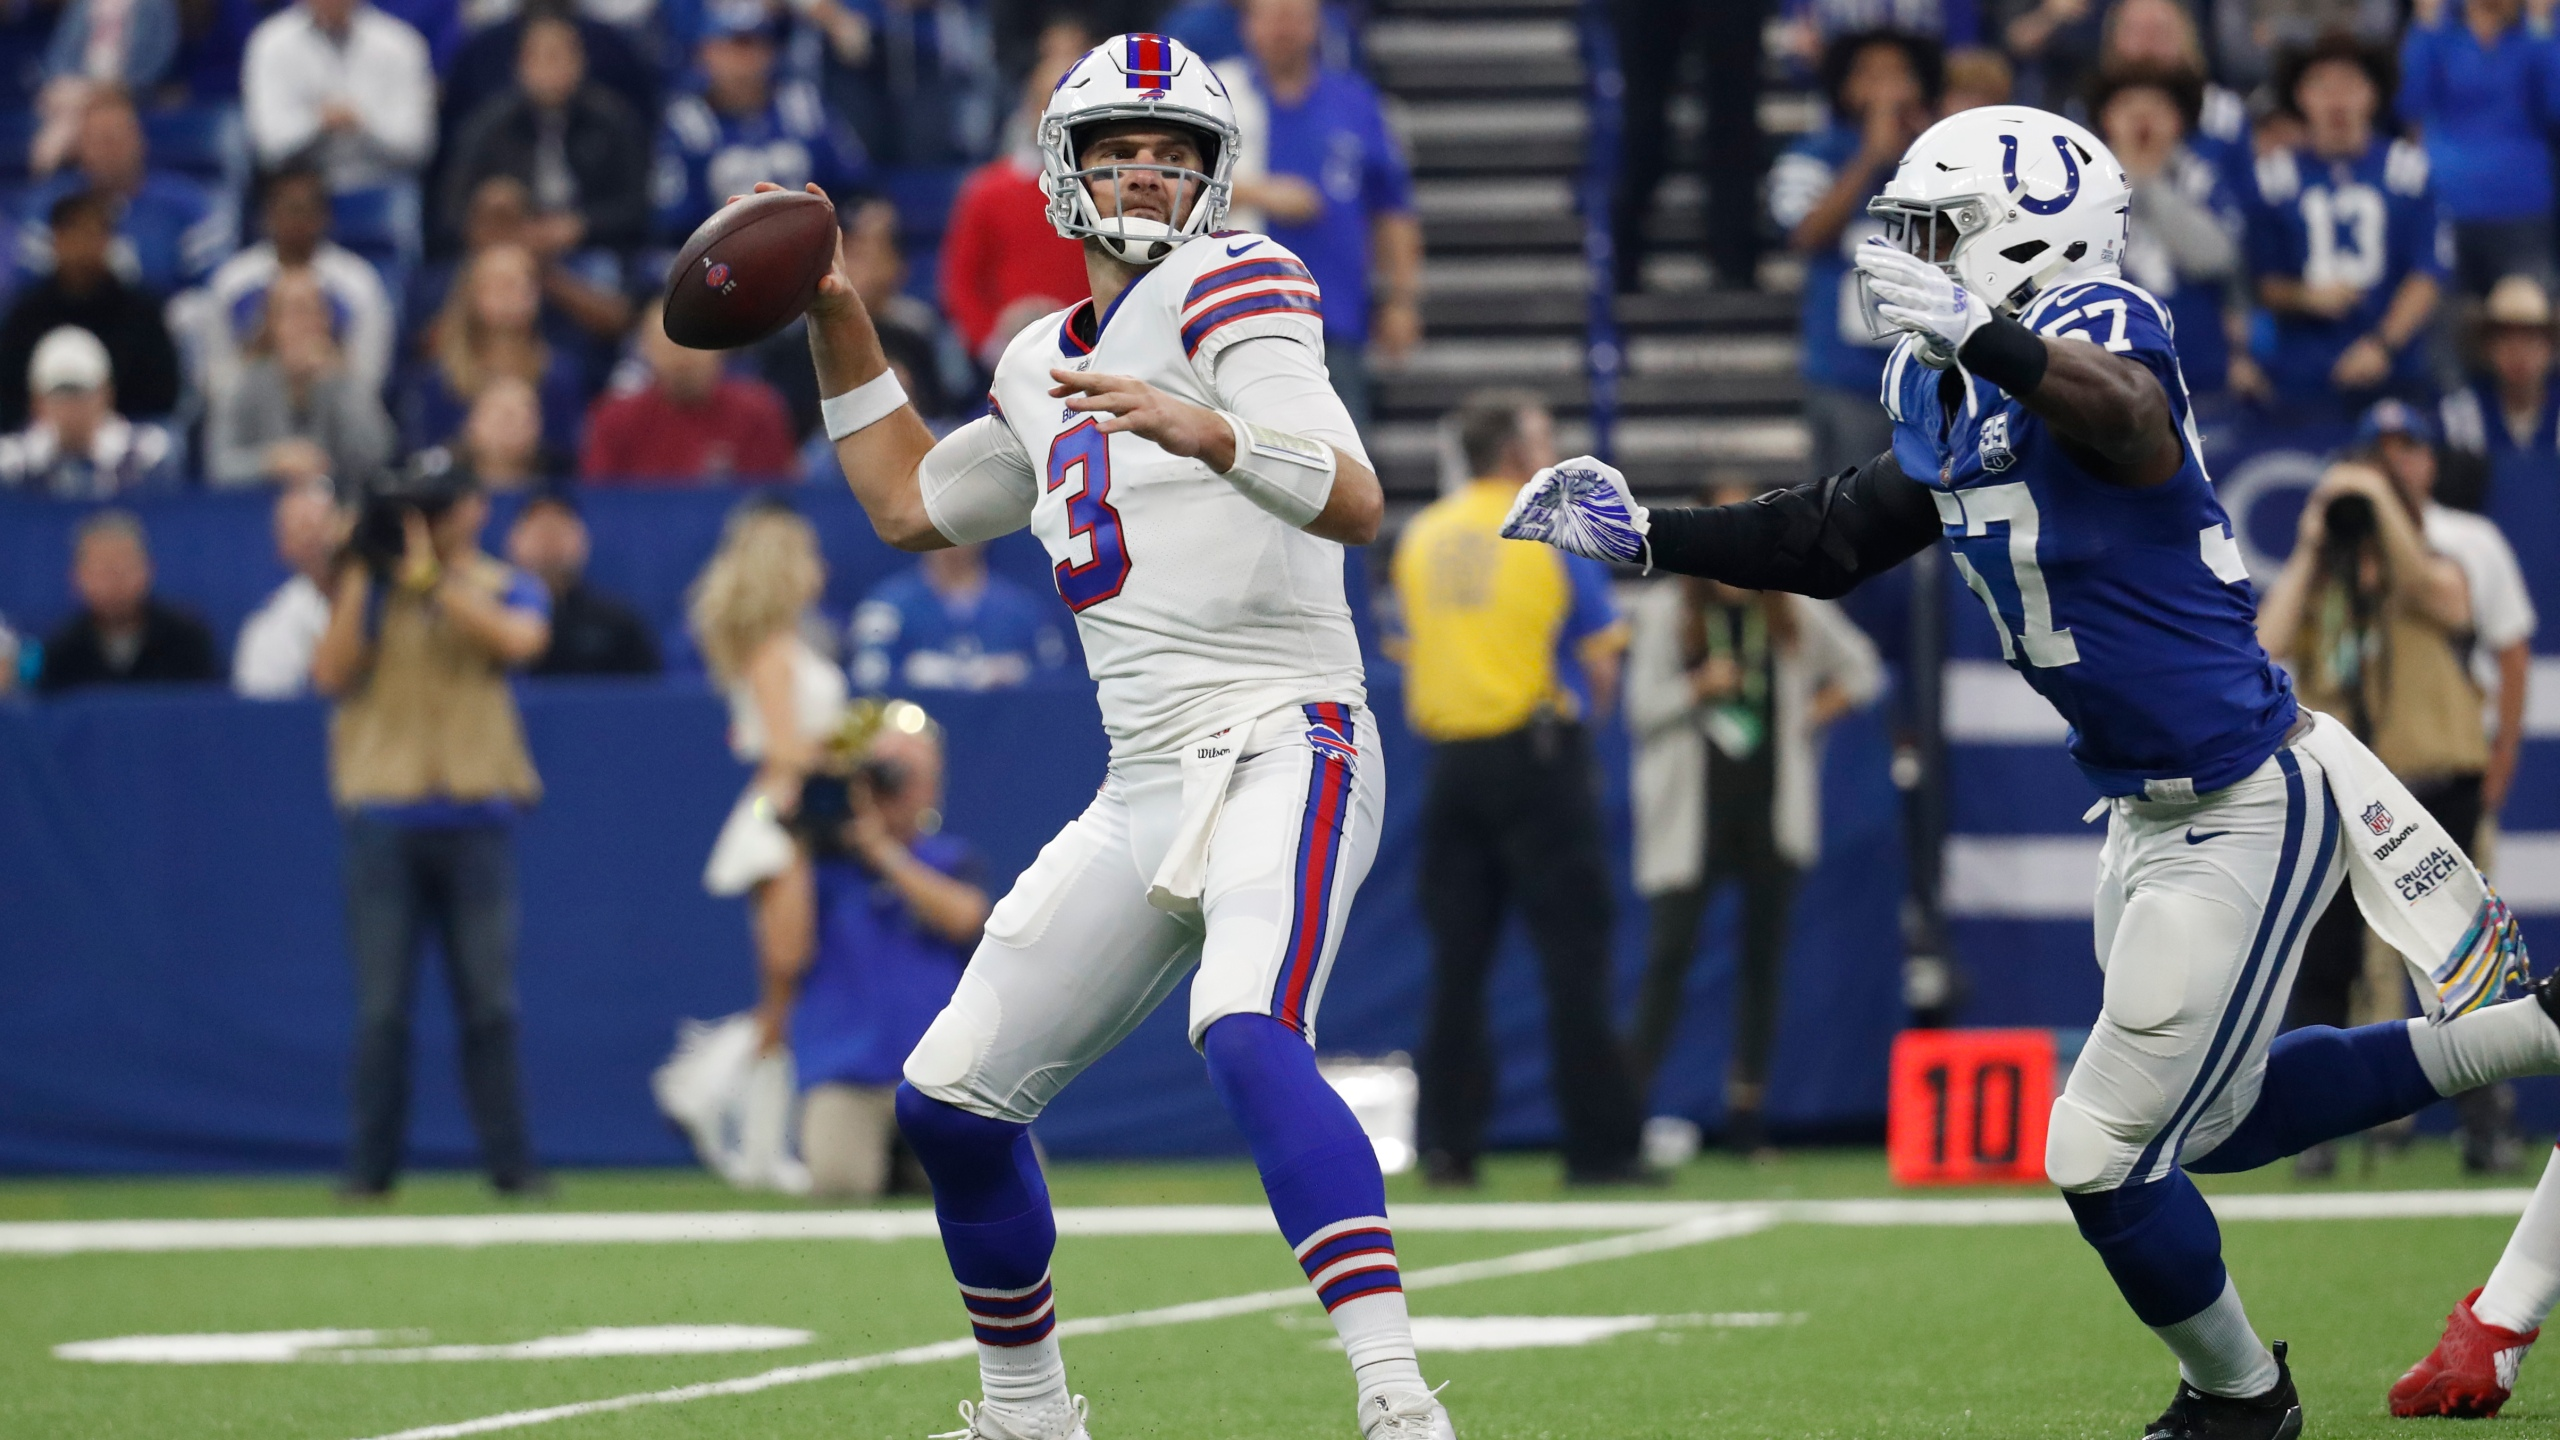 Bills Colts Football_1540151693423